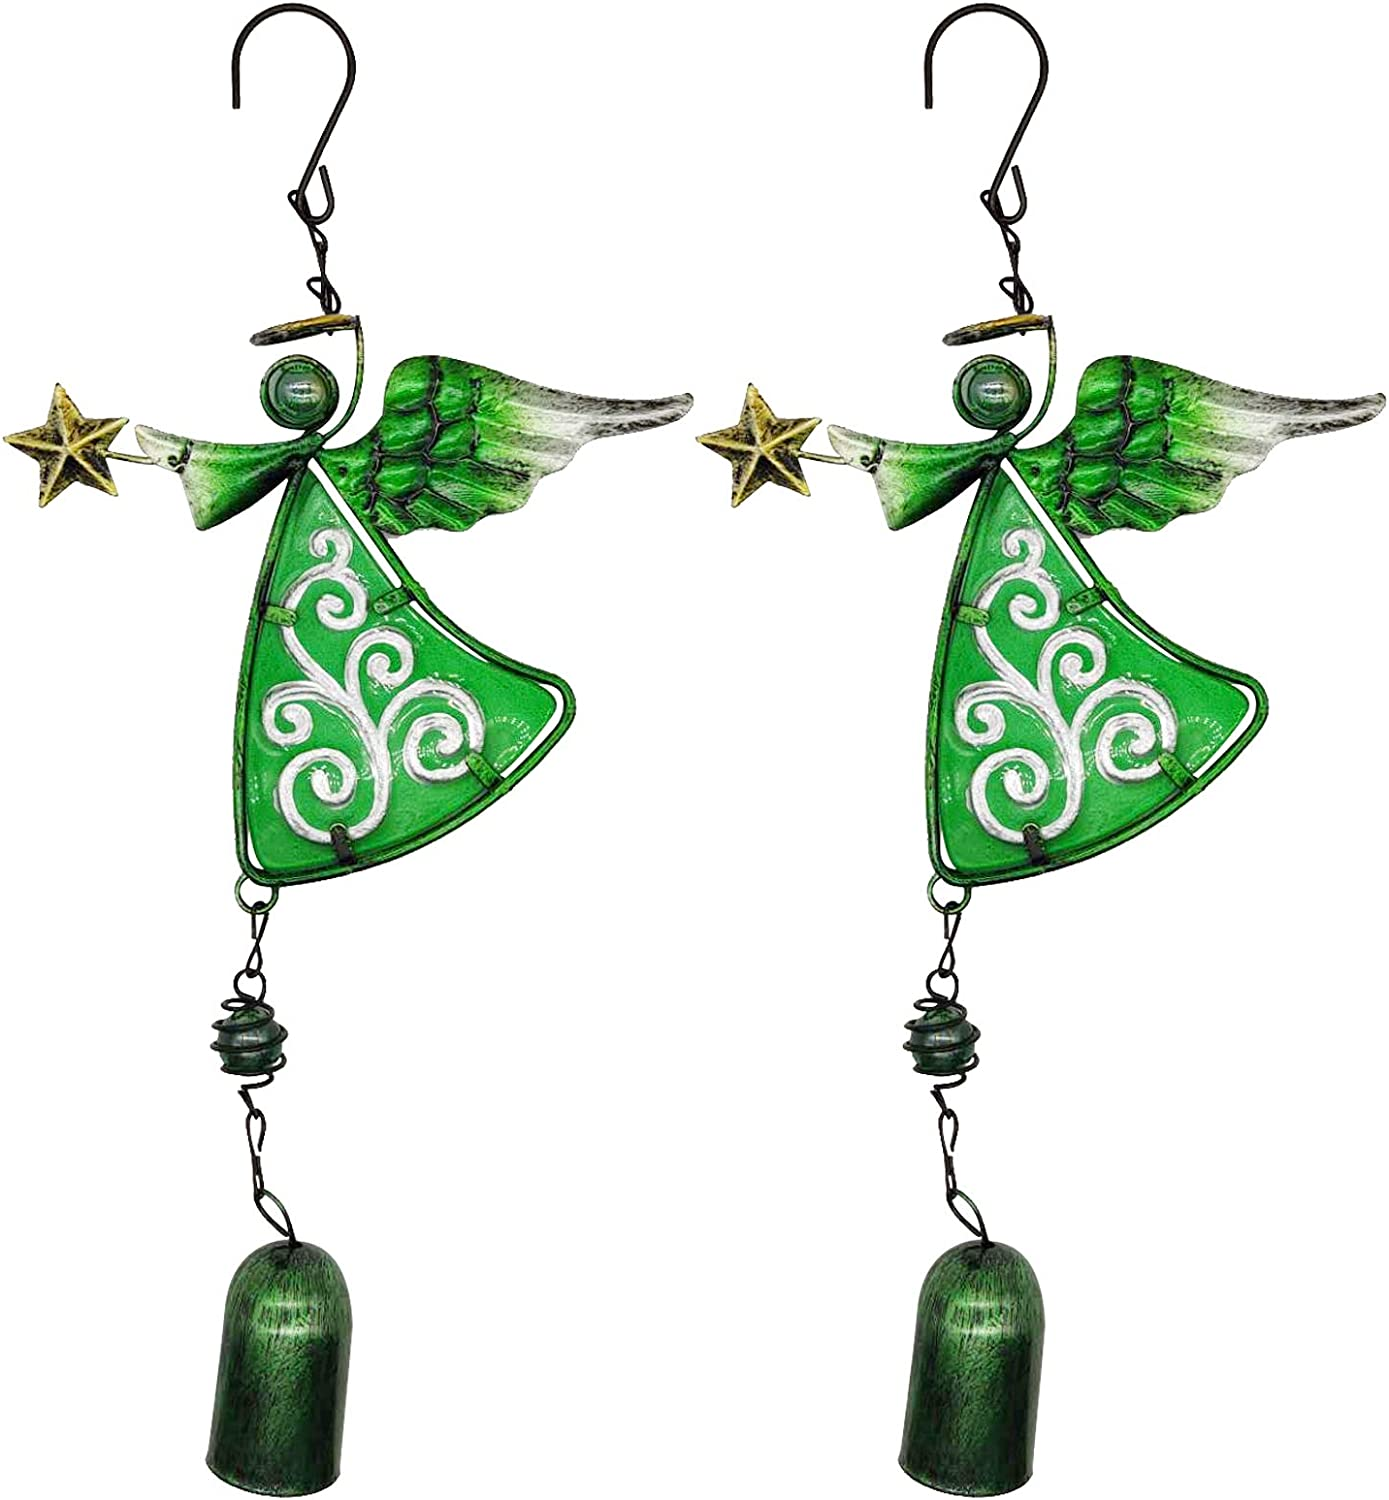 VOKPROOF Angel Wind Chimes - Fairy Garden Decor Wind Bells Indoor and Outdoor Decoration, Metal Musical Wind Chime for Home, Patio, Festival Gifts for Mom (Set of 2 Green Angels)